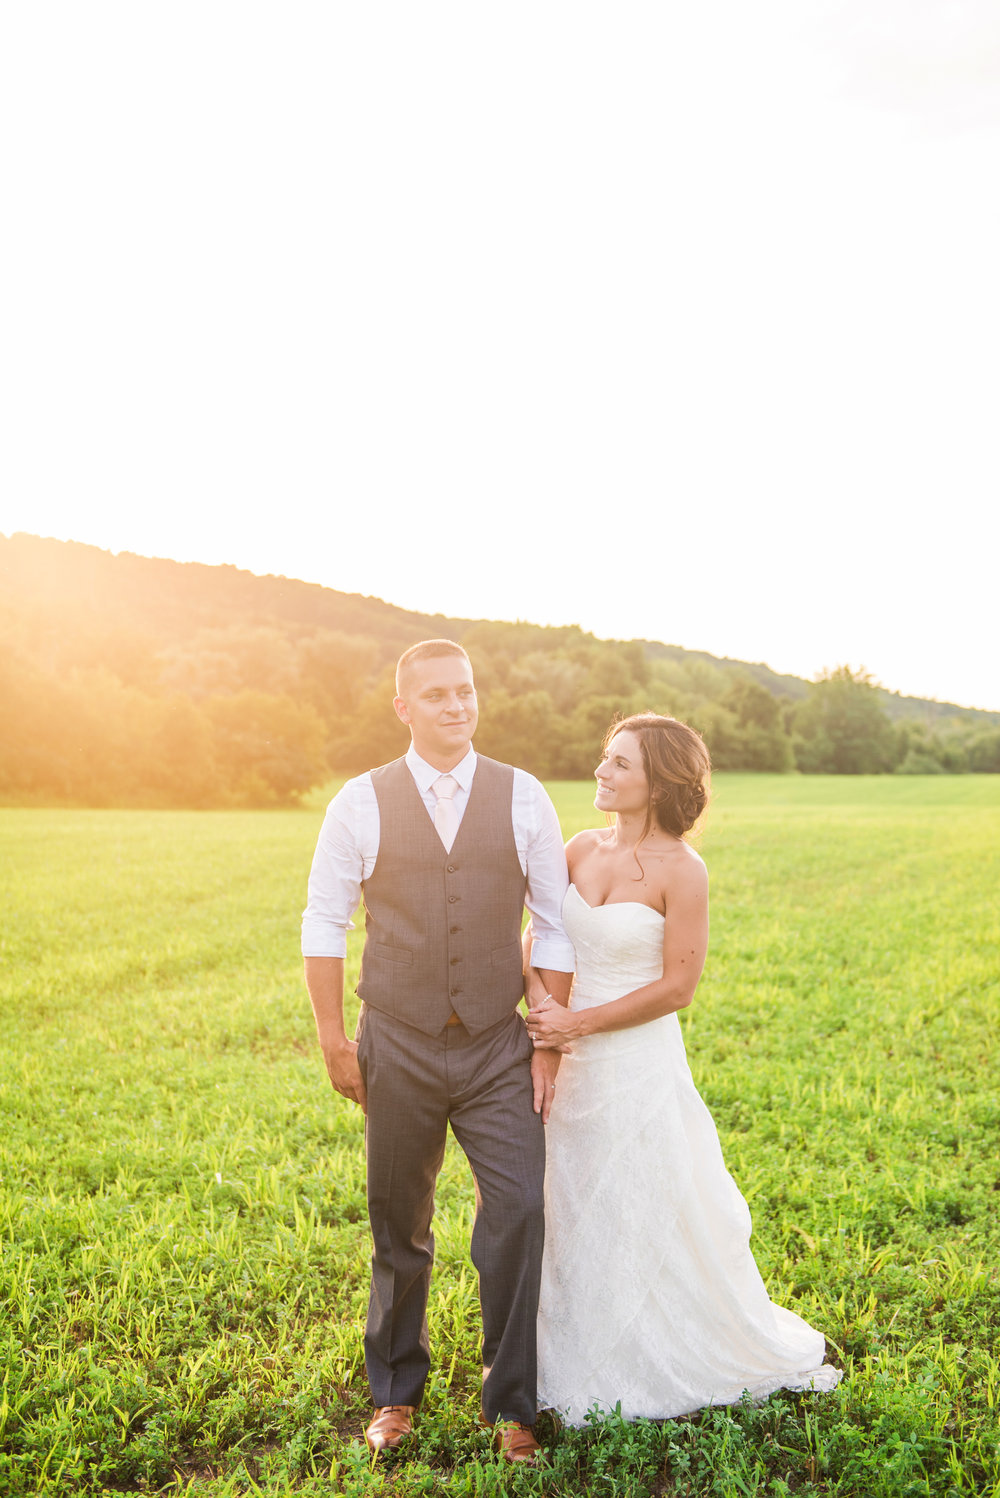 Wolf_Oak_Acres_Central_NY_Wedding_JILL_STUDIO_Rochester_NY_Photographer_DSC_5766.jpg